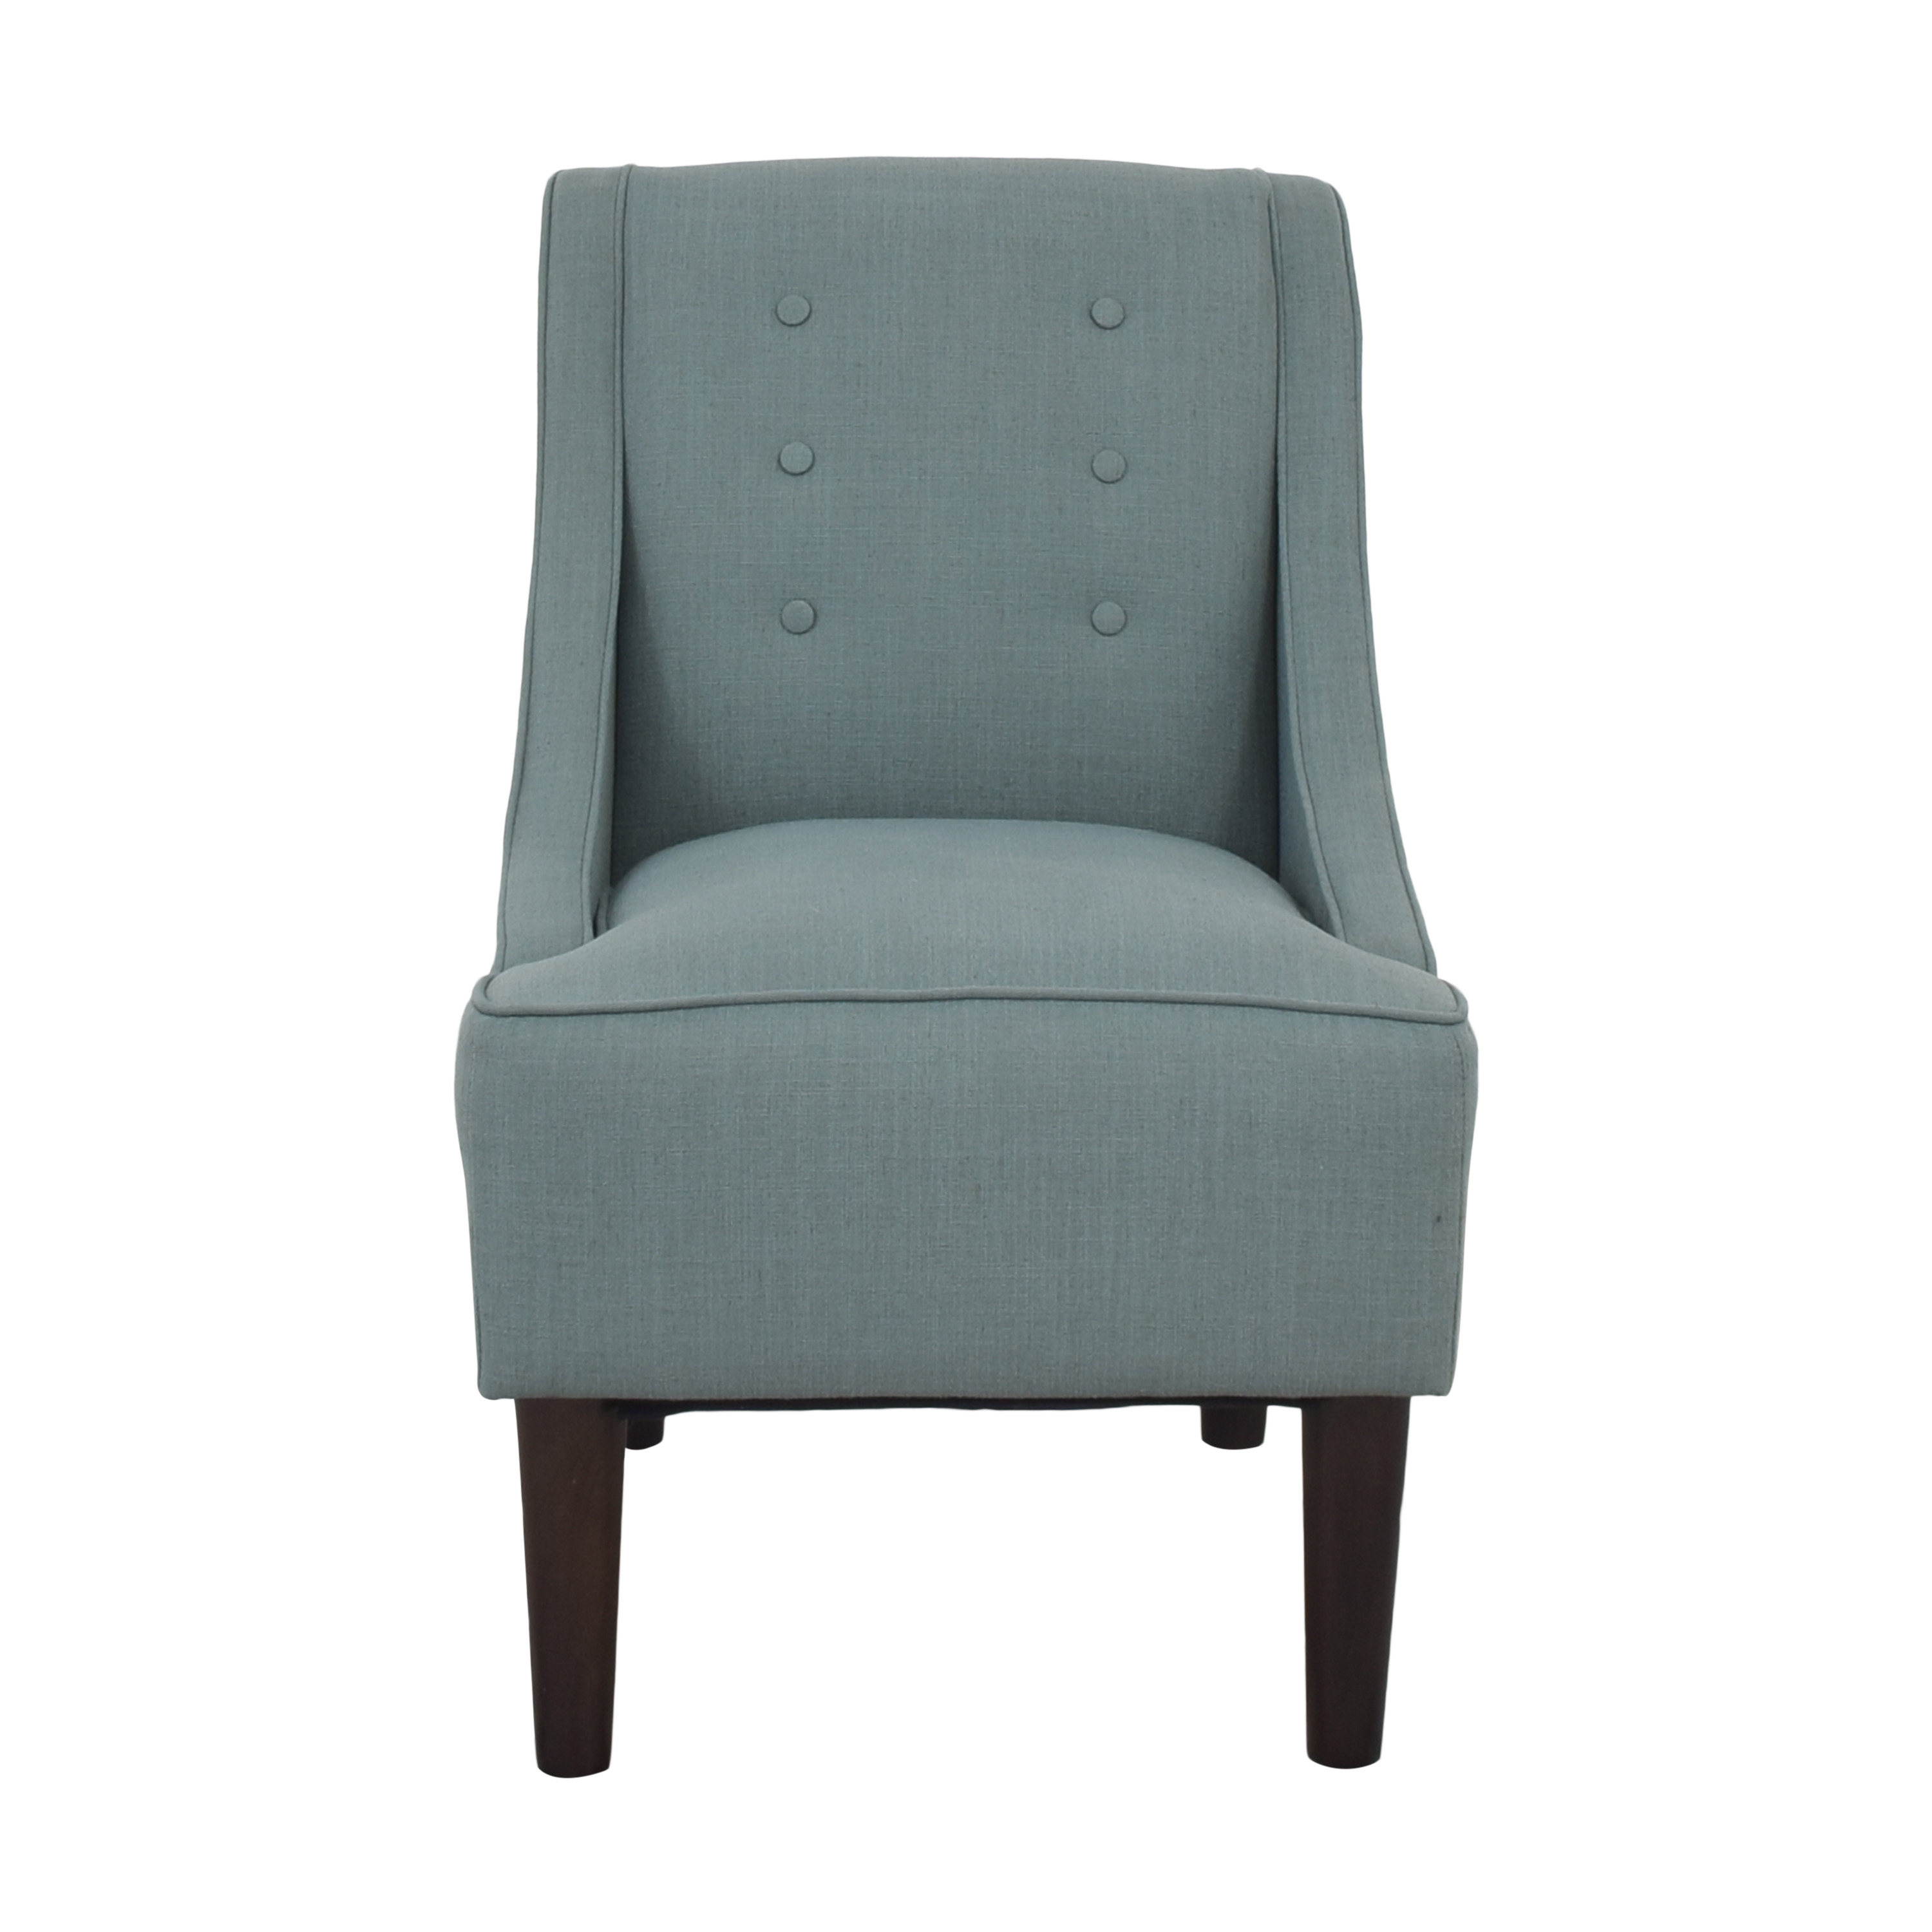 buy Threshold Threshold Swoop Arm Chair online